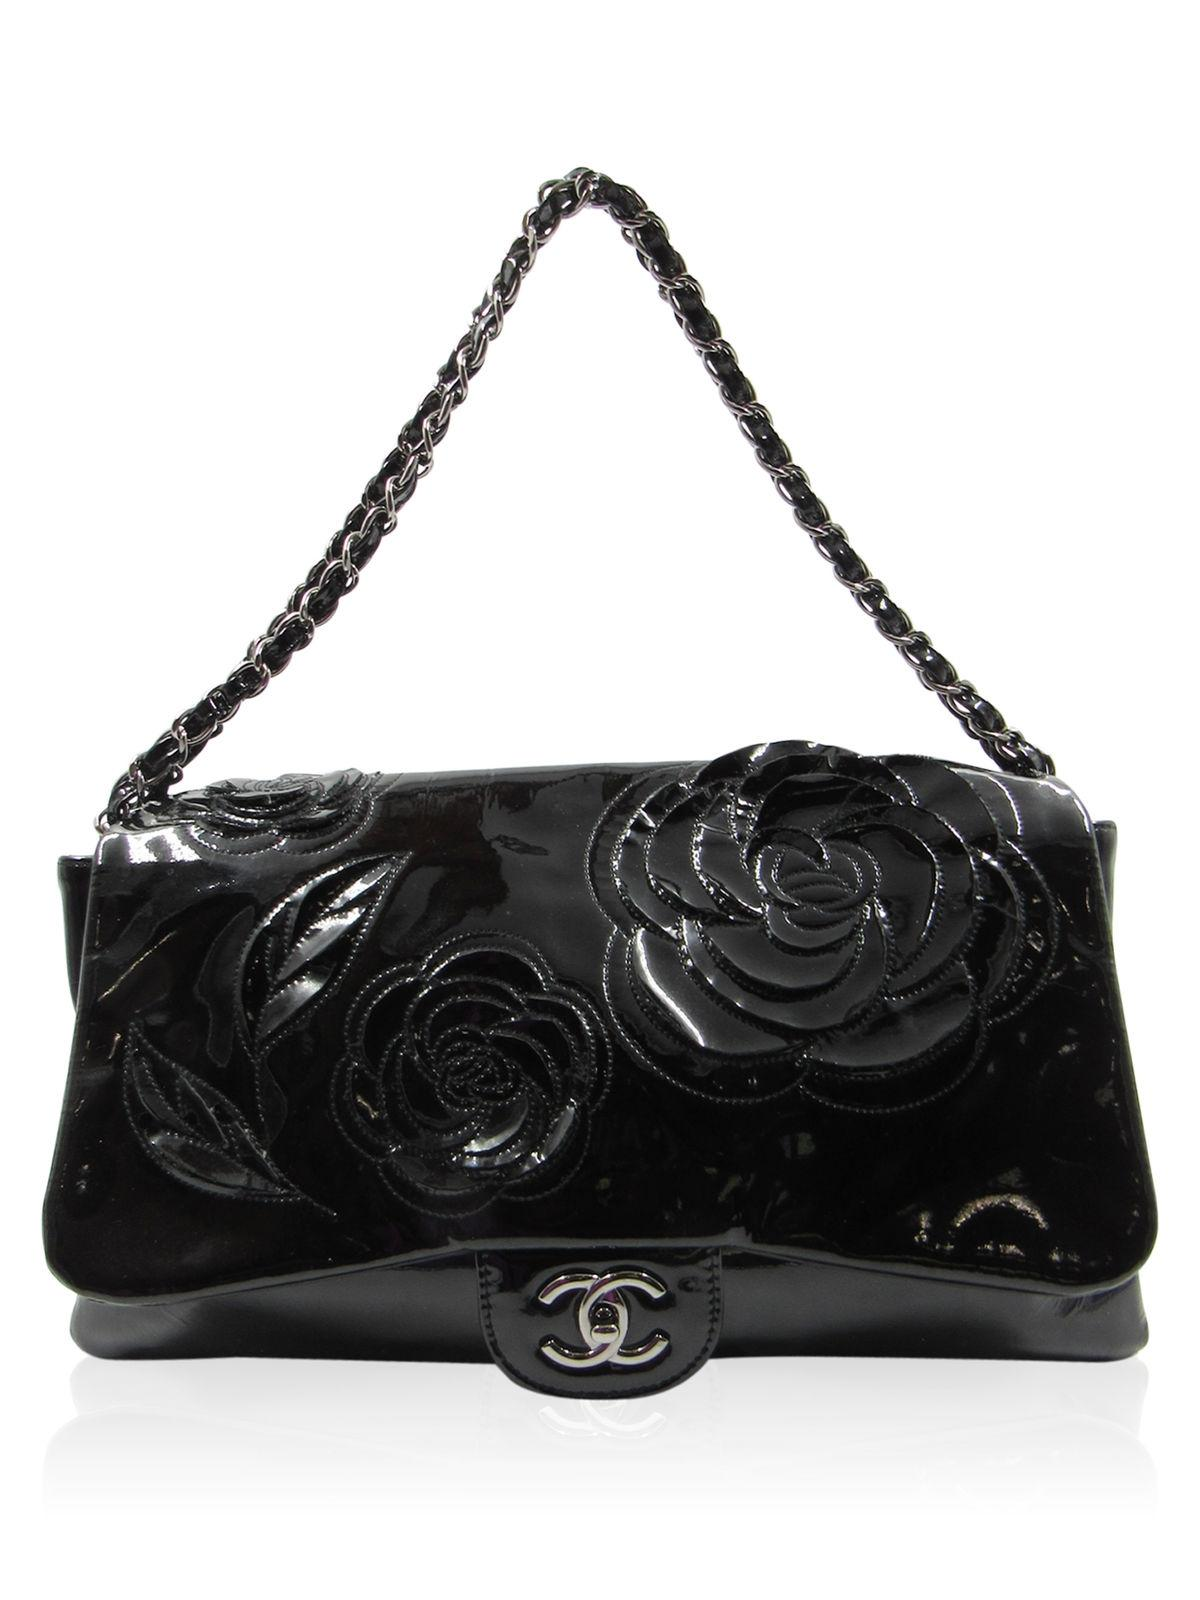 Chanel Classic Flap Camelia Flower Cutout Tweed Black Patent Leather Shoulder Bag - Tradesy